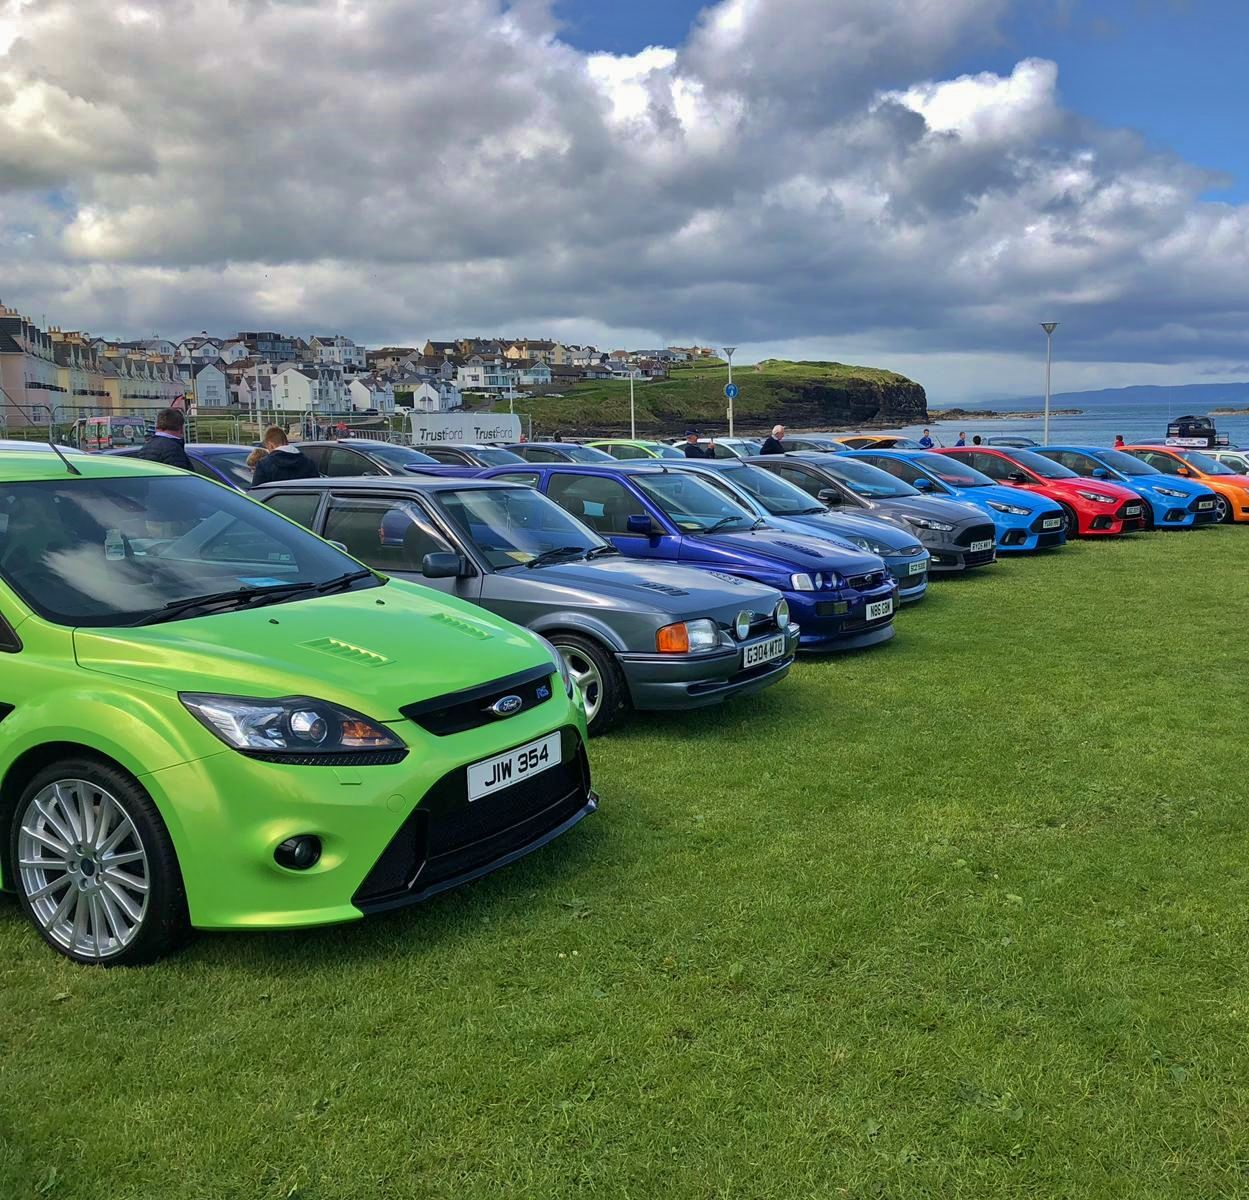 ford_fair_green_rs_focus_and_selection_of_cars.JPG